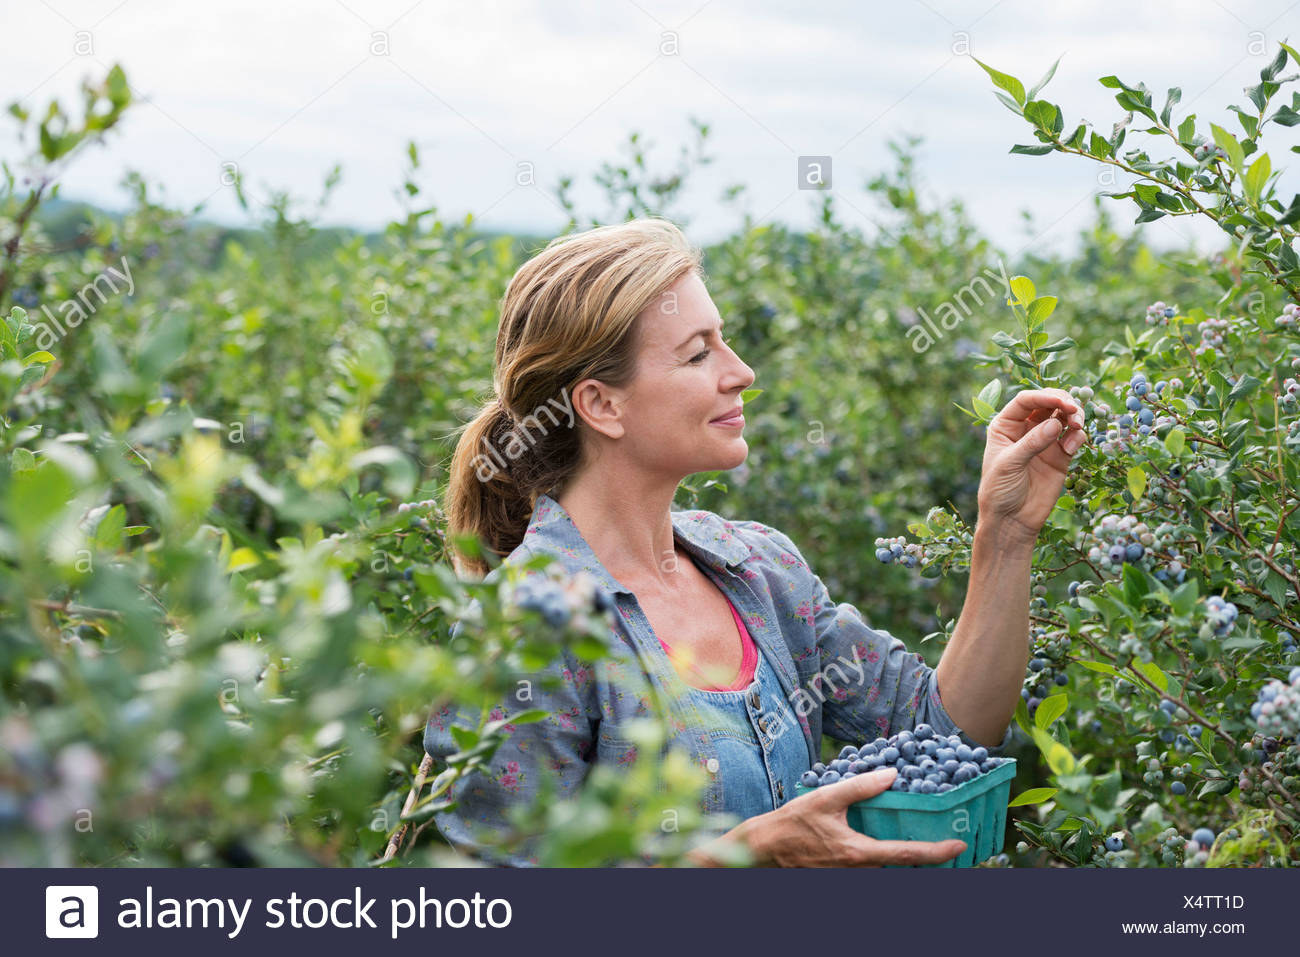 An organic fruit farm. A woman picking the berry fruits from the bushes. - Stock Image